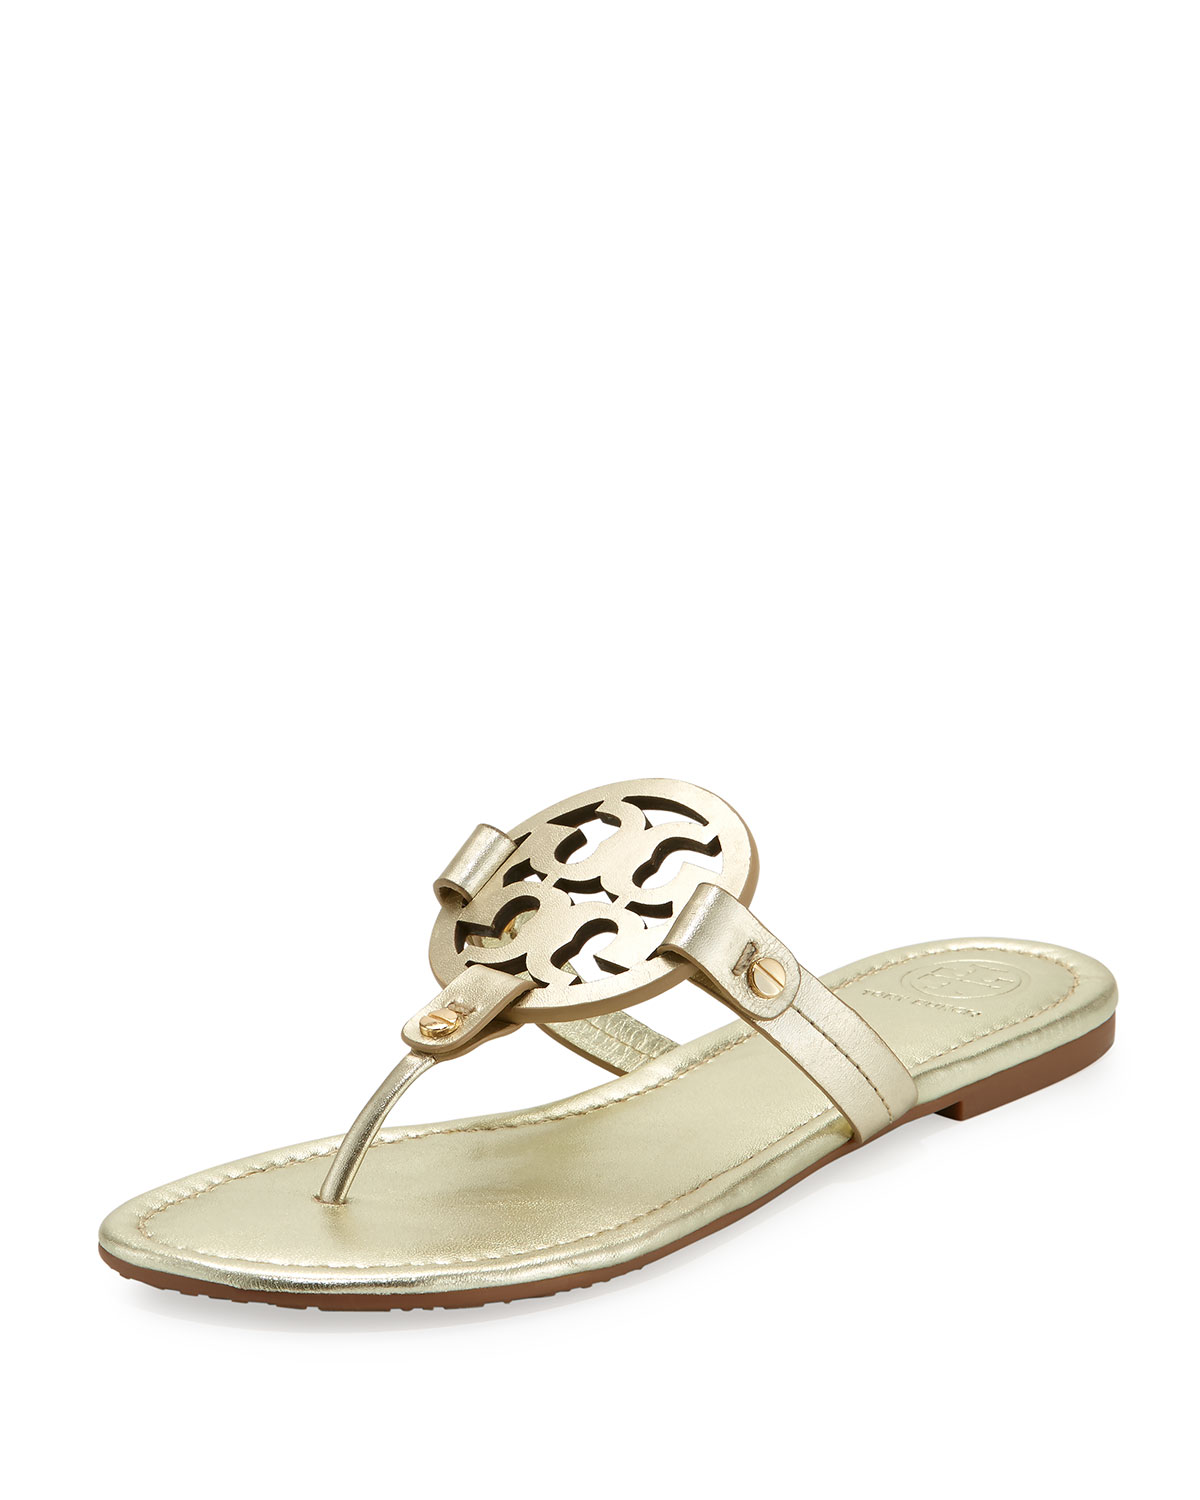 ce9e849de Tory Burch Miller Leather Logo Sandal